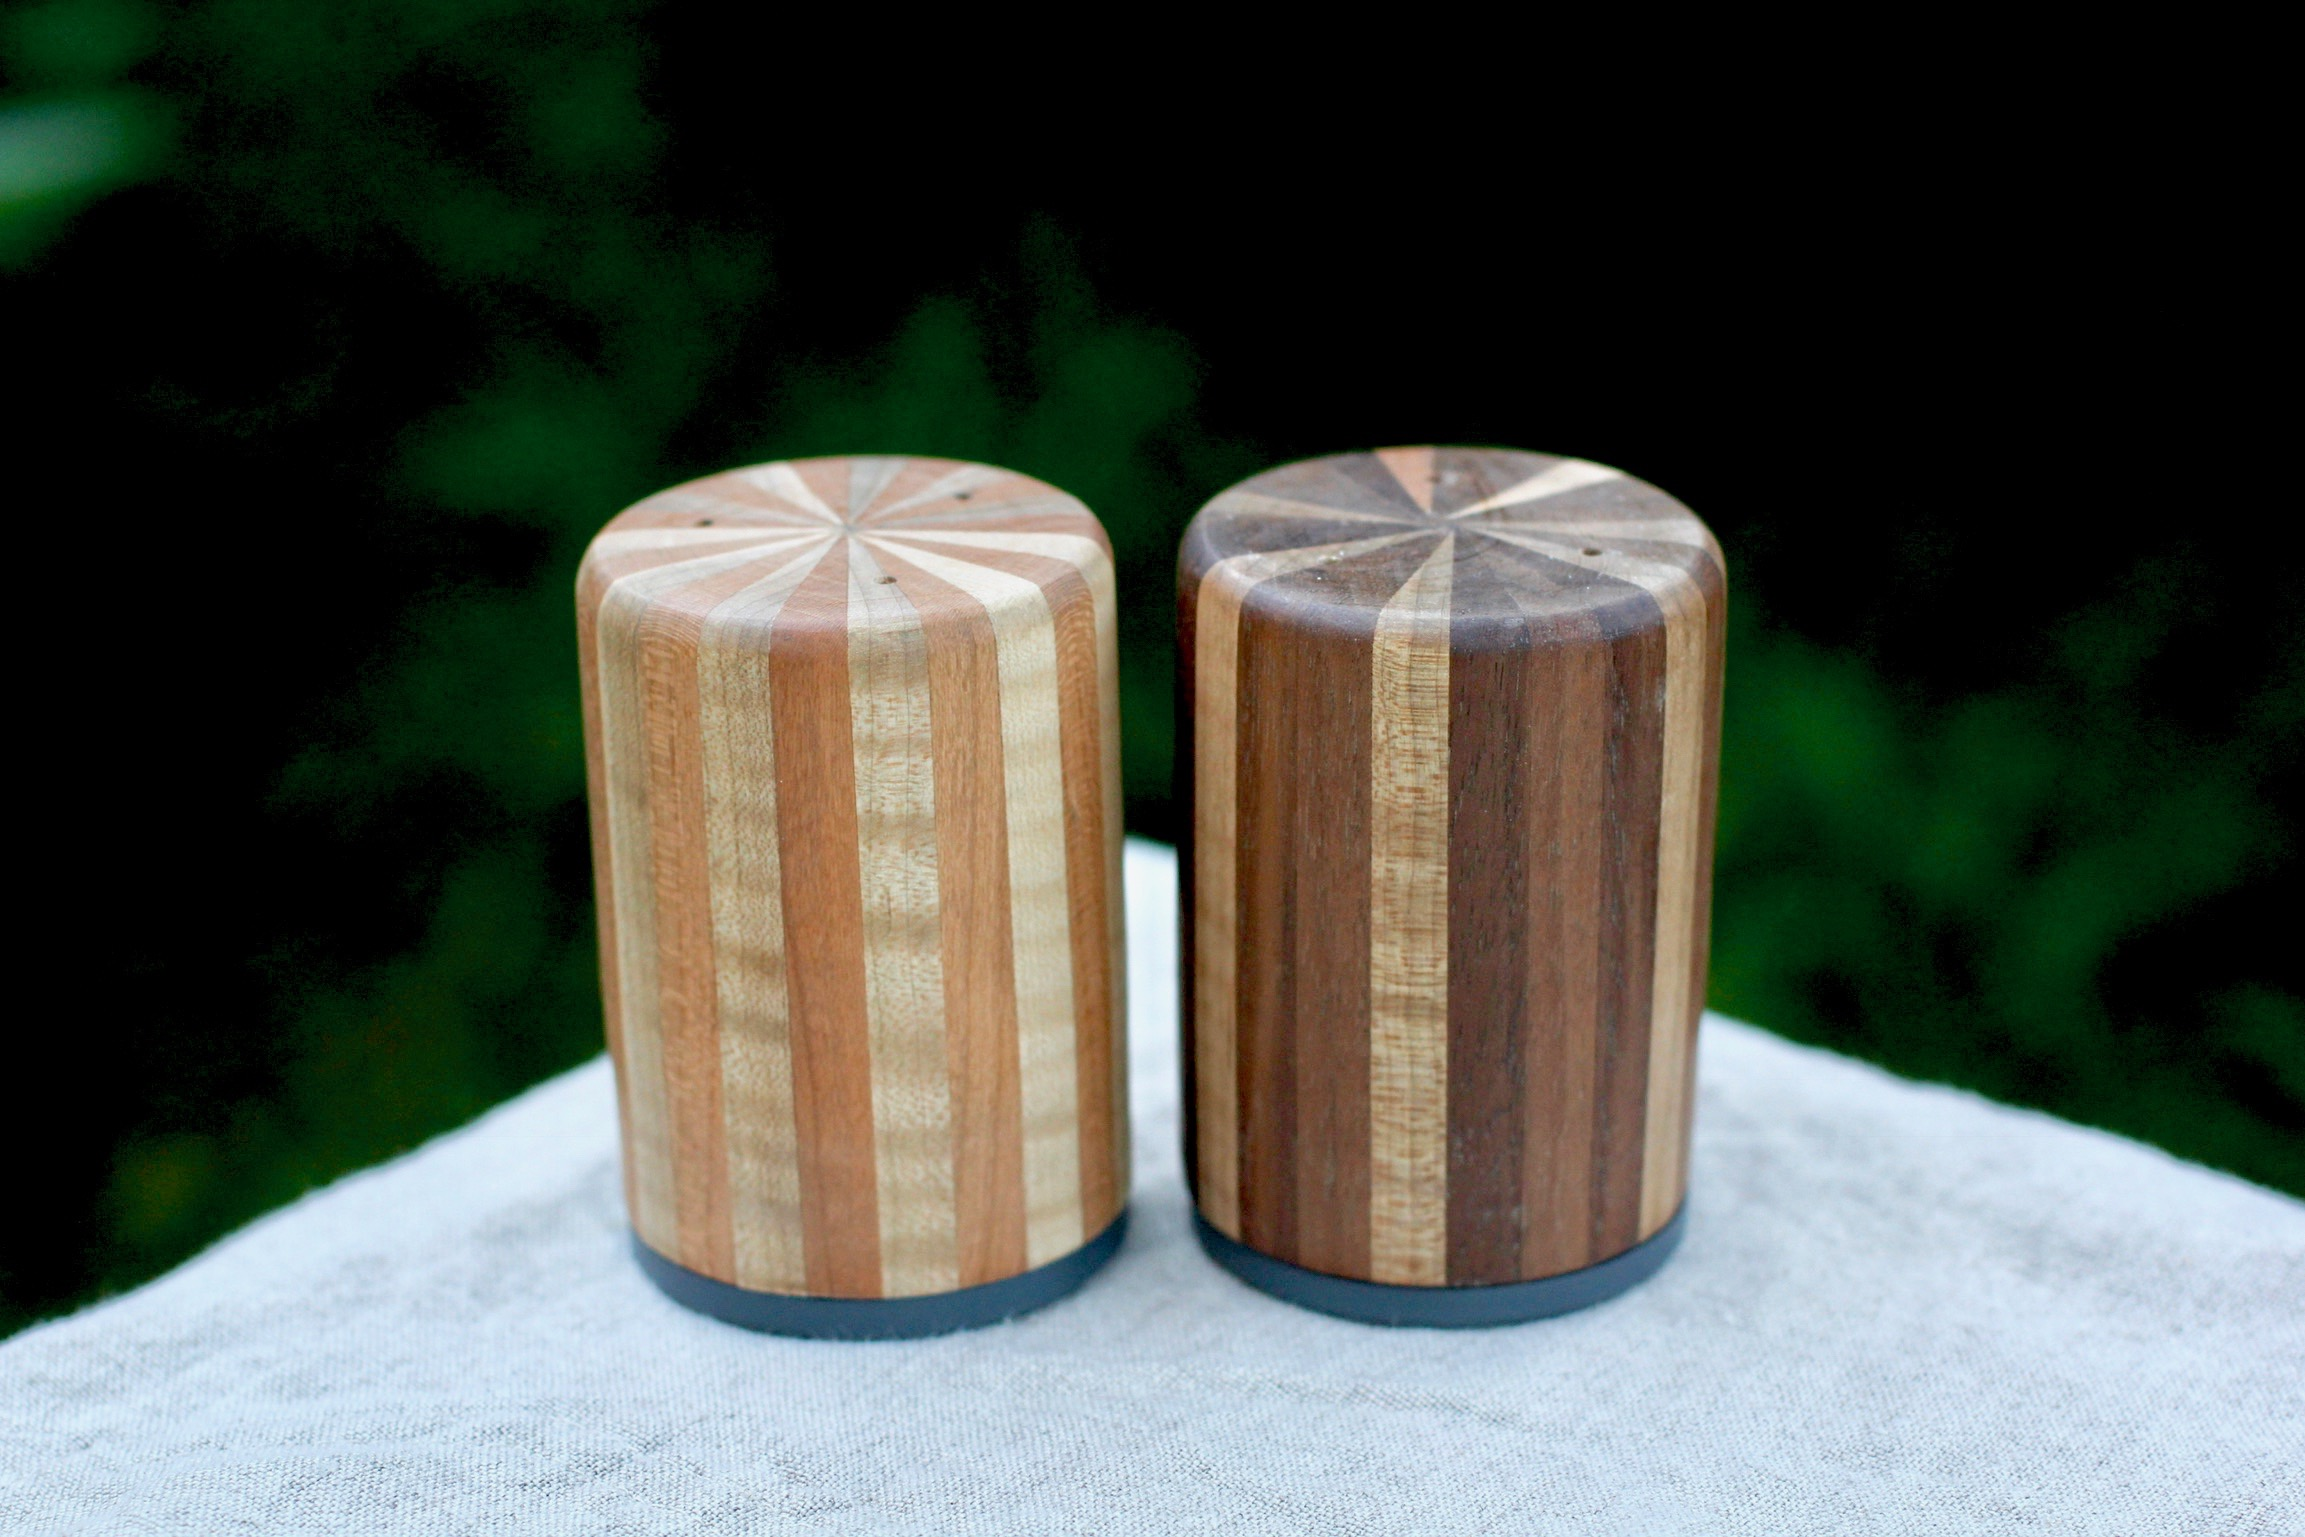 Another set of salt and pepper shakers made from scrap wood.